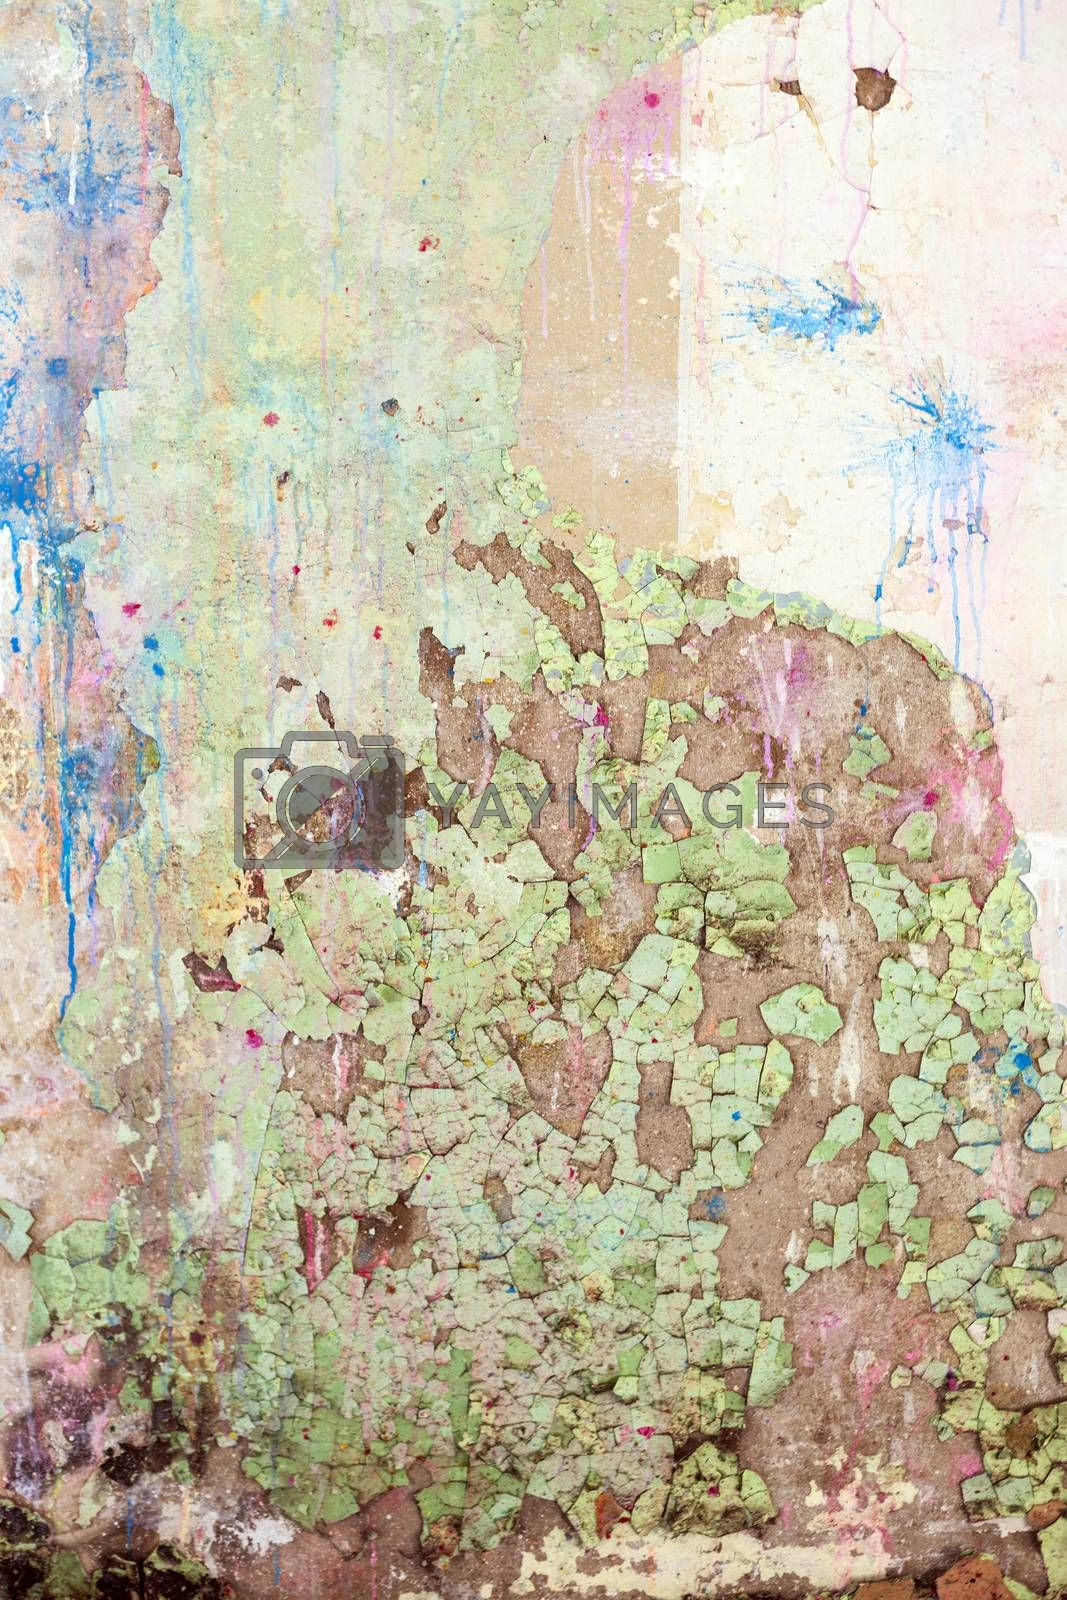 Royalty free image of Grunge Colored  Old Concrete Texture Wall by H2Oshka